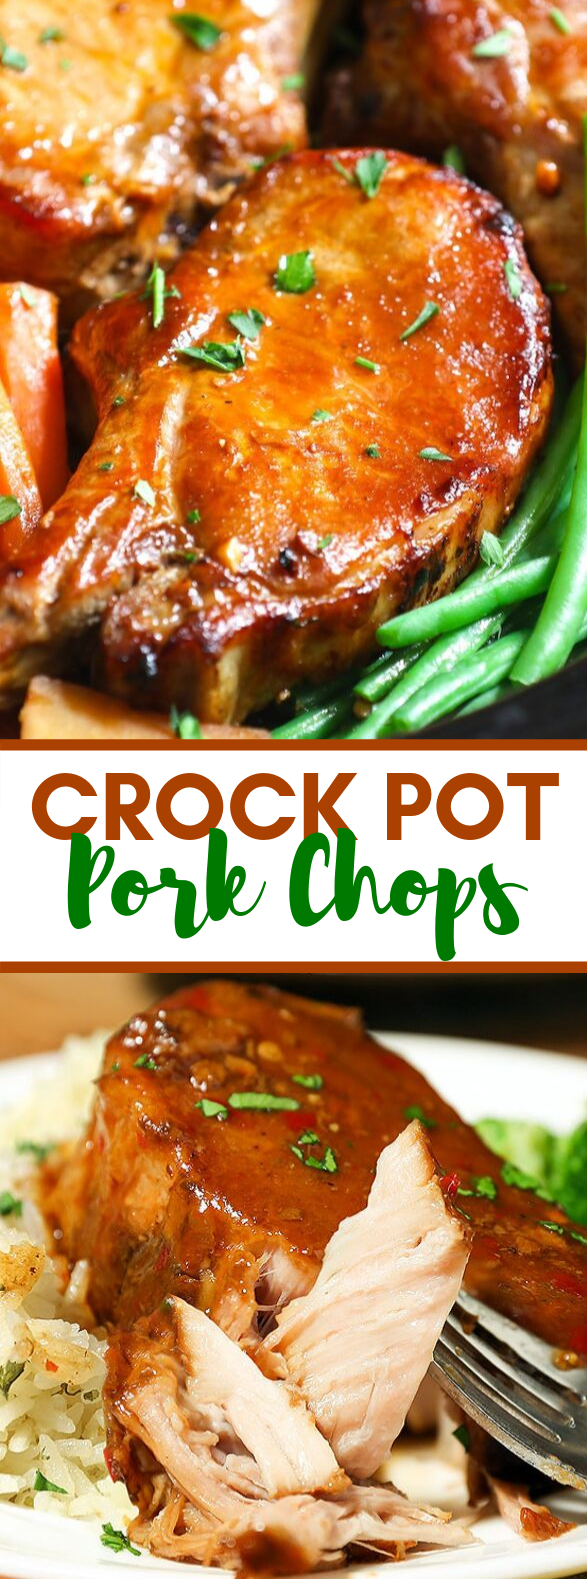 Crock Pot Pork Chops #dinner #slowcooker